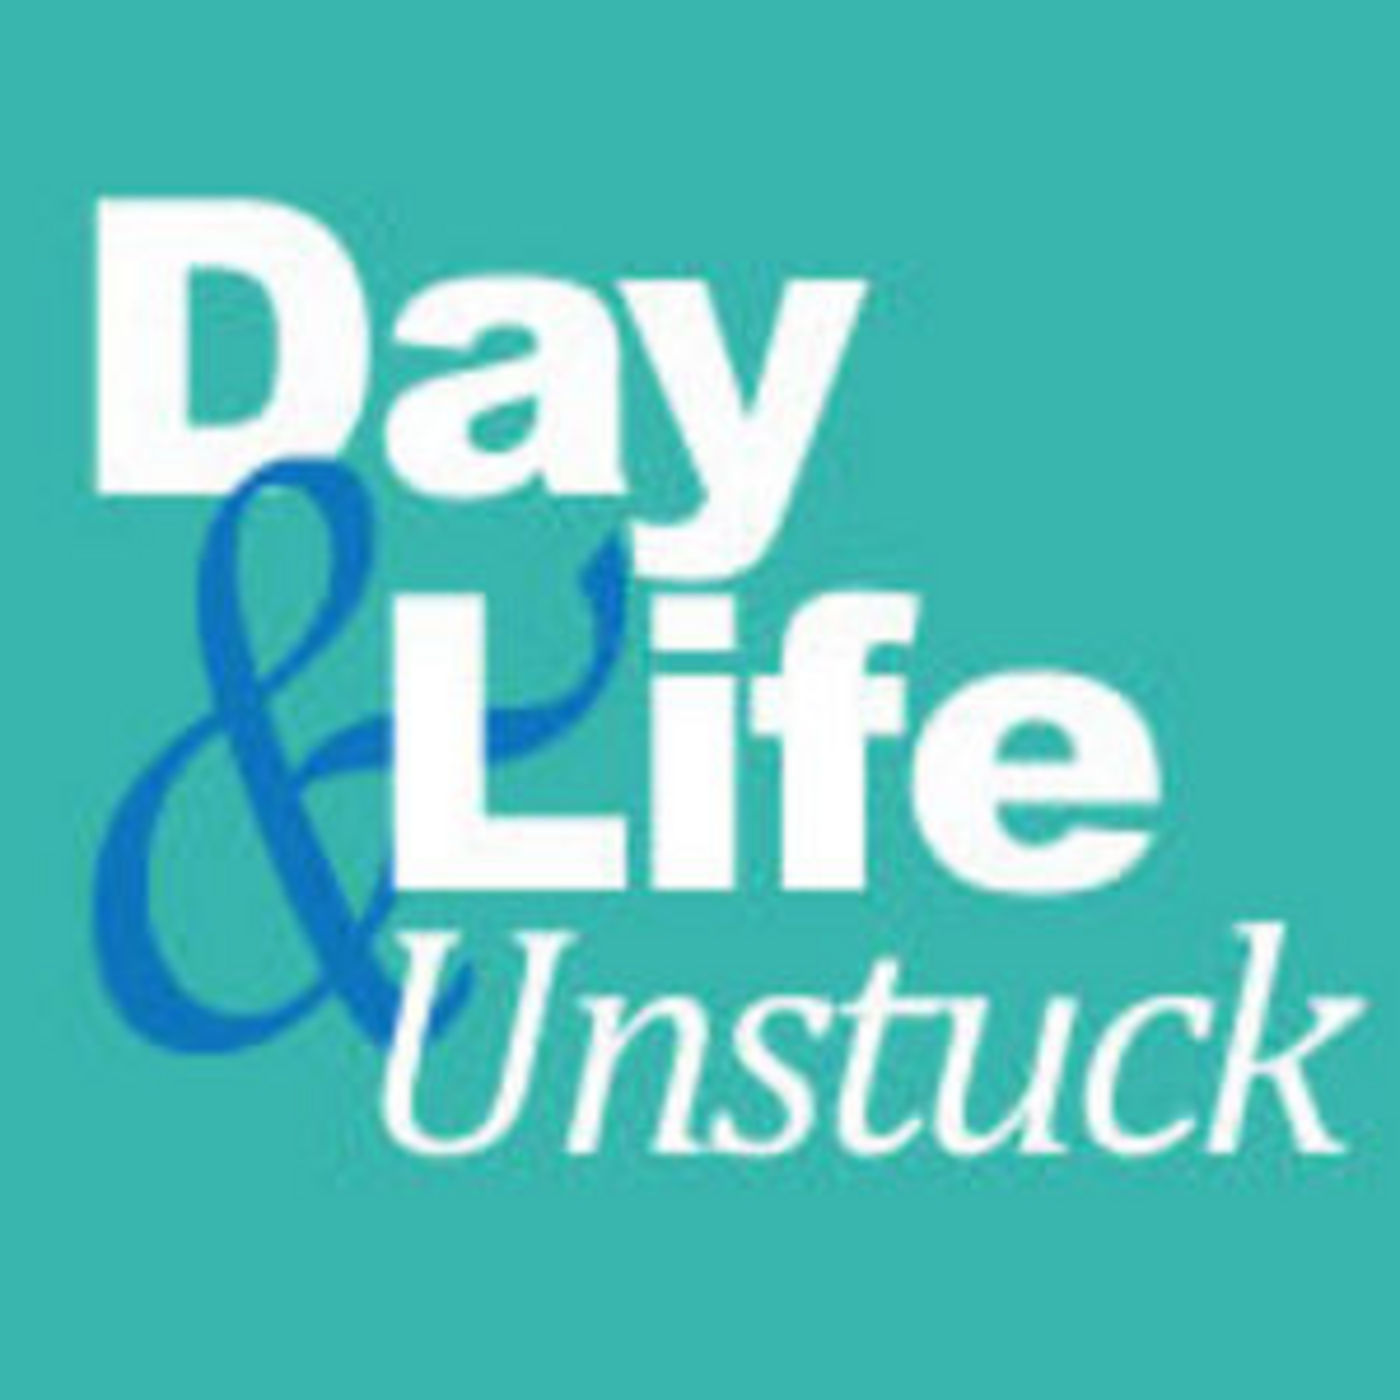 Your Day and Your Life Unstuck with Sherry Essig